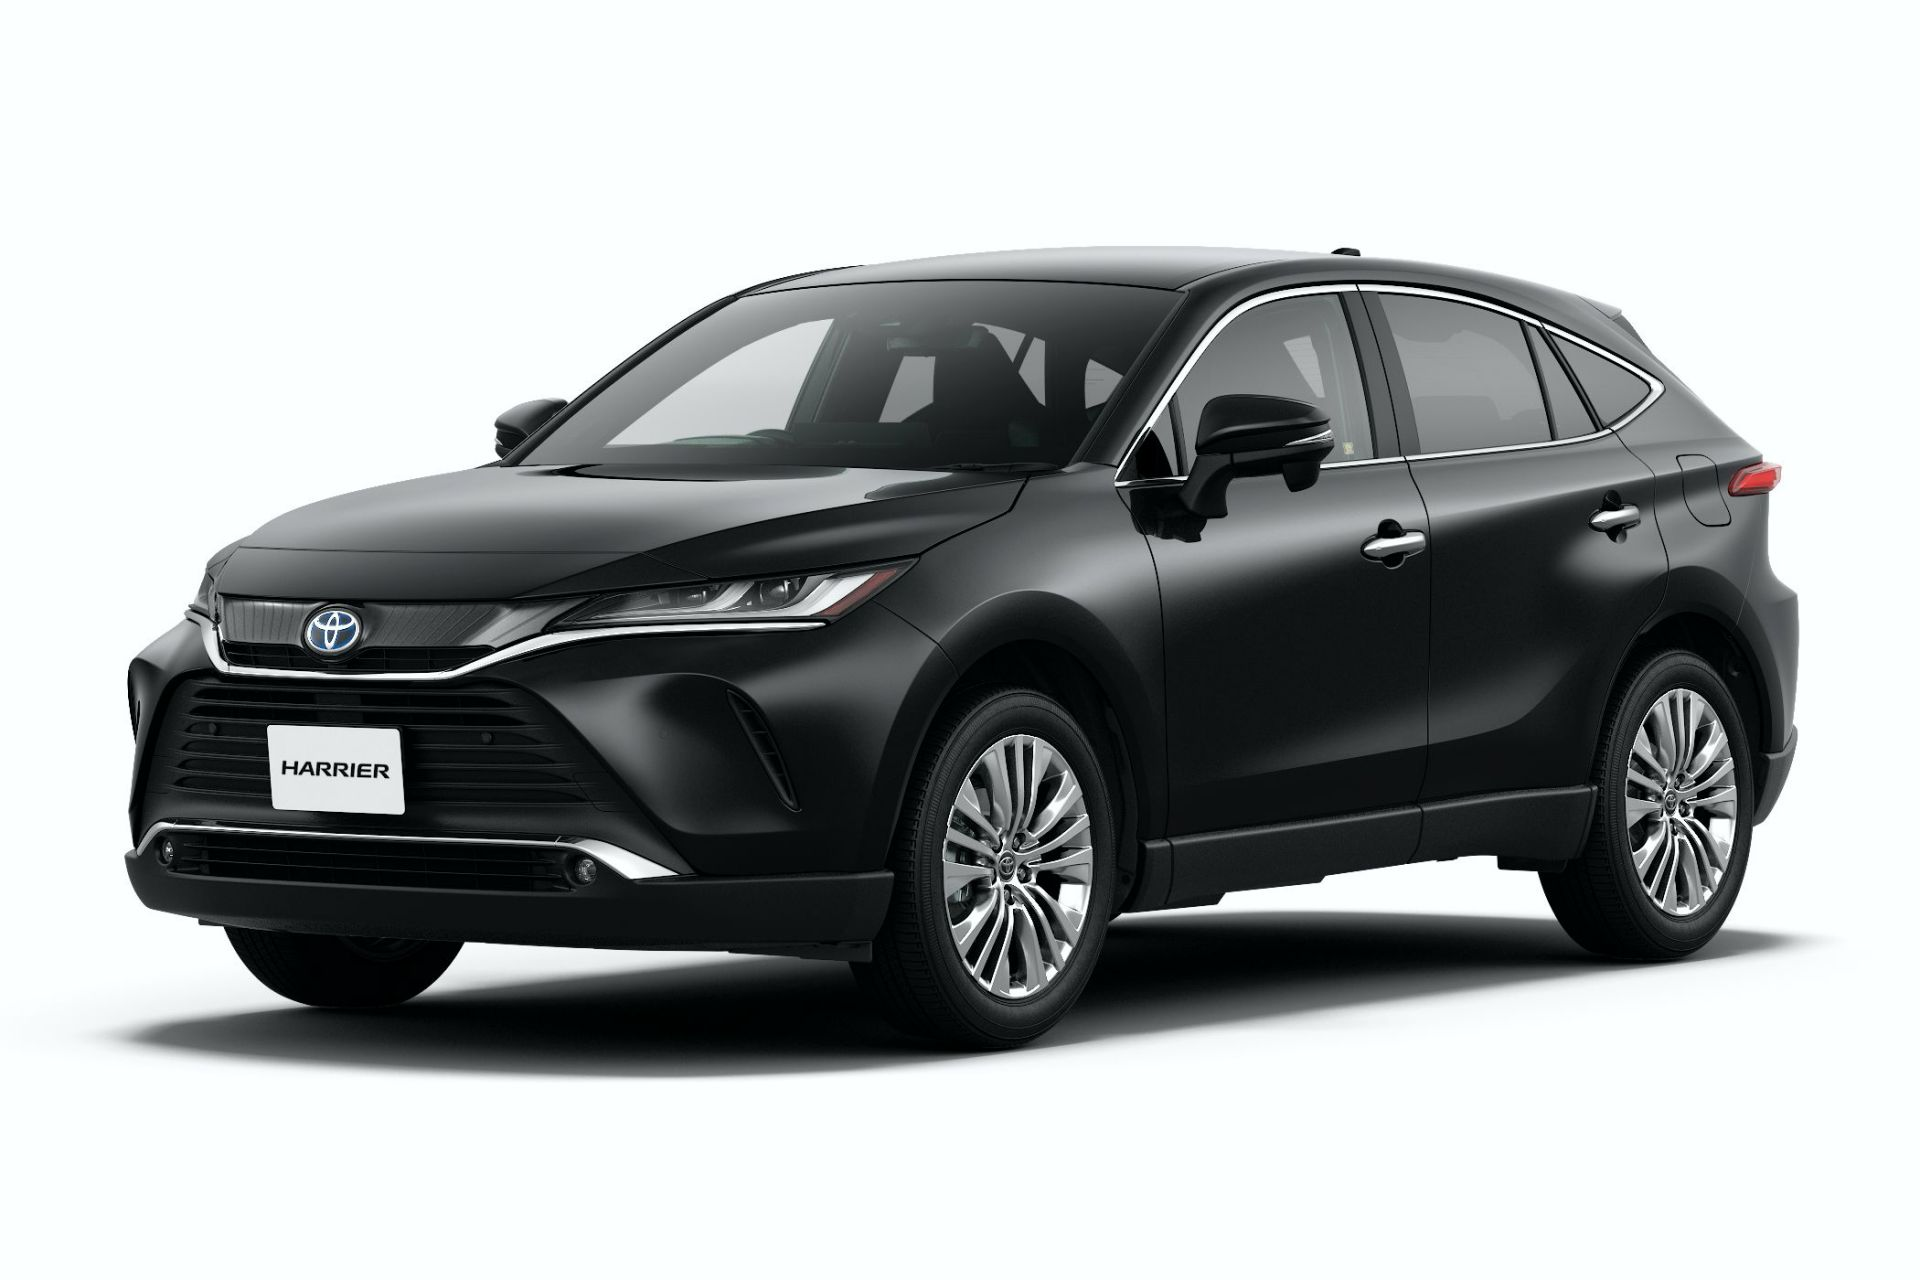 2020_Toyota_Harrier_0020